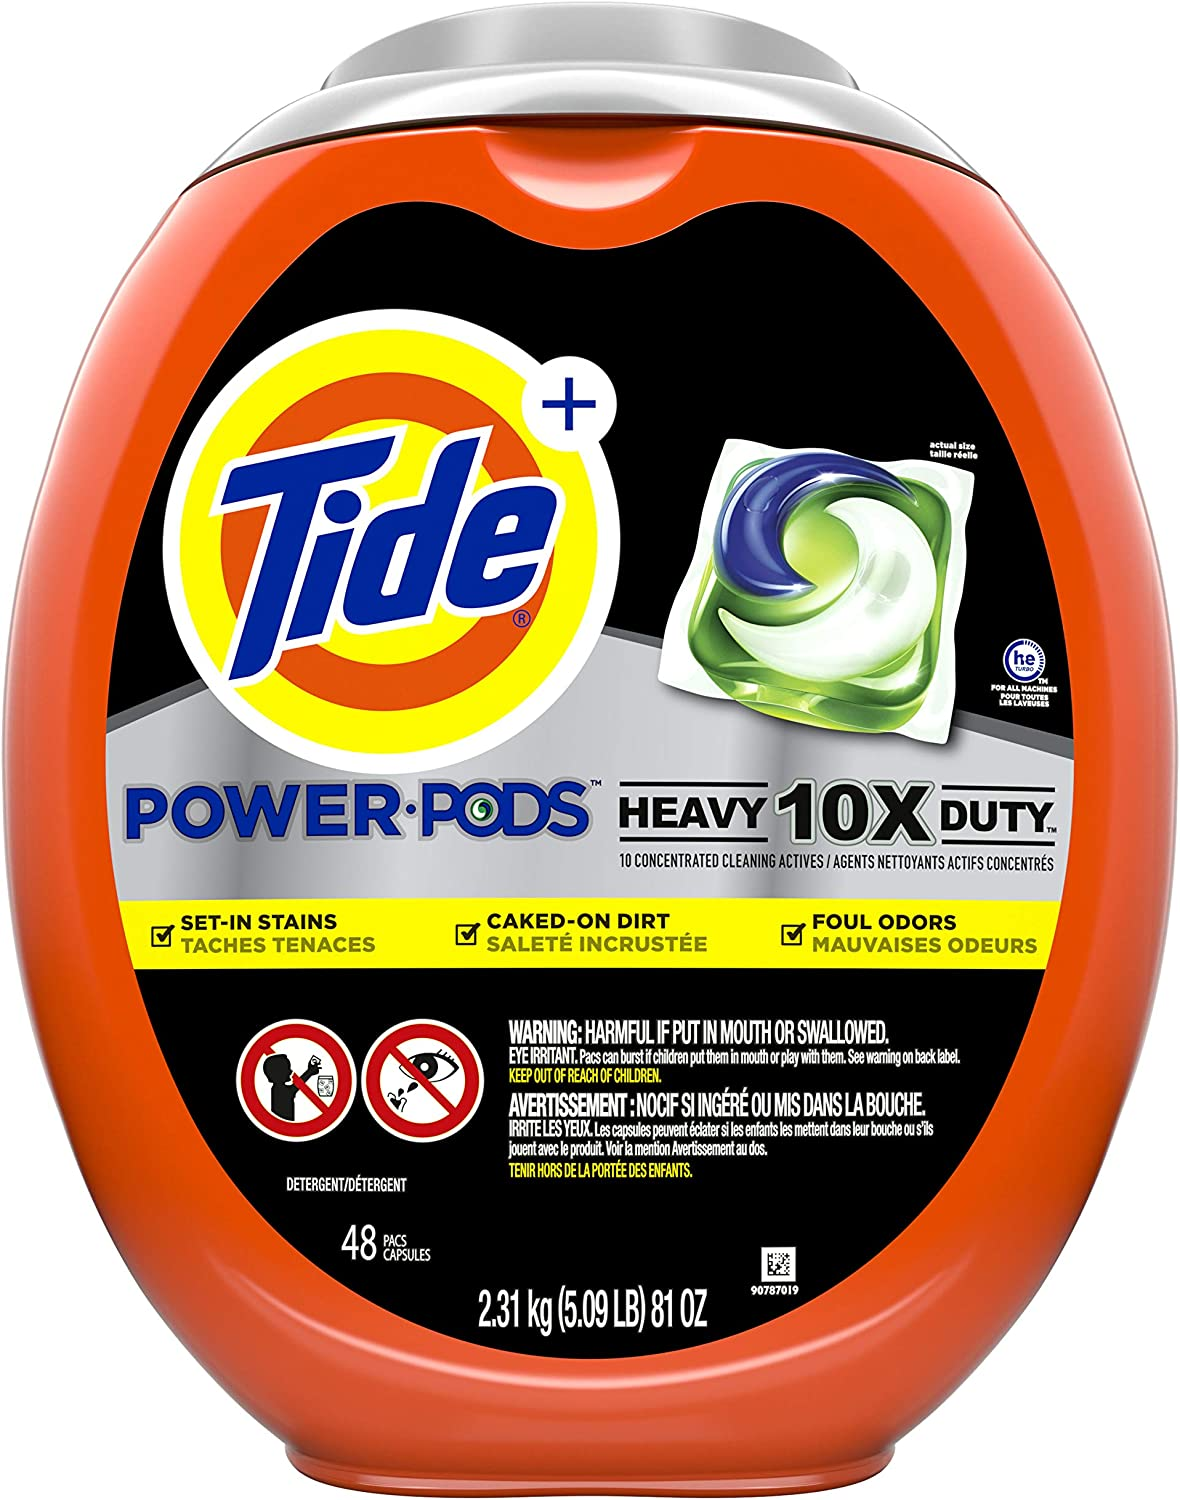 Tide Power pods Laundry Detergent Liquid pacs, 10x Heavy Duty for Impossible Stains, 48 Count